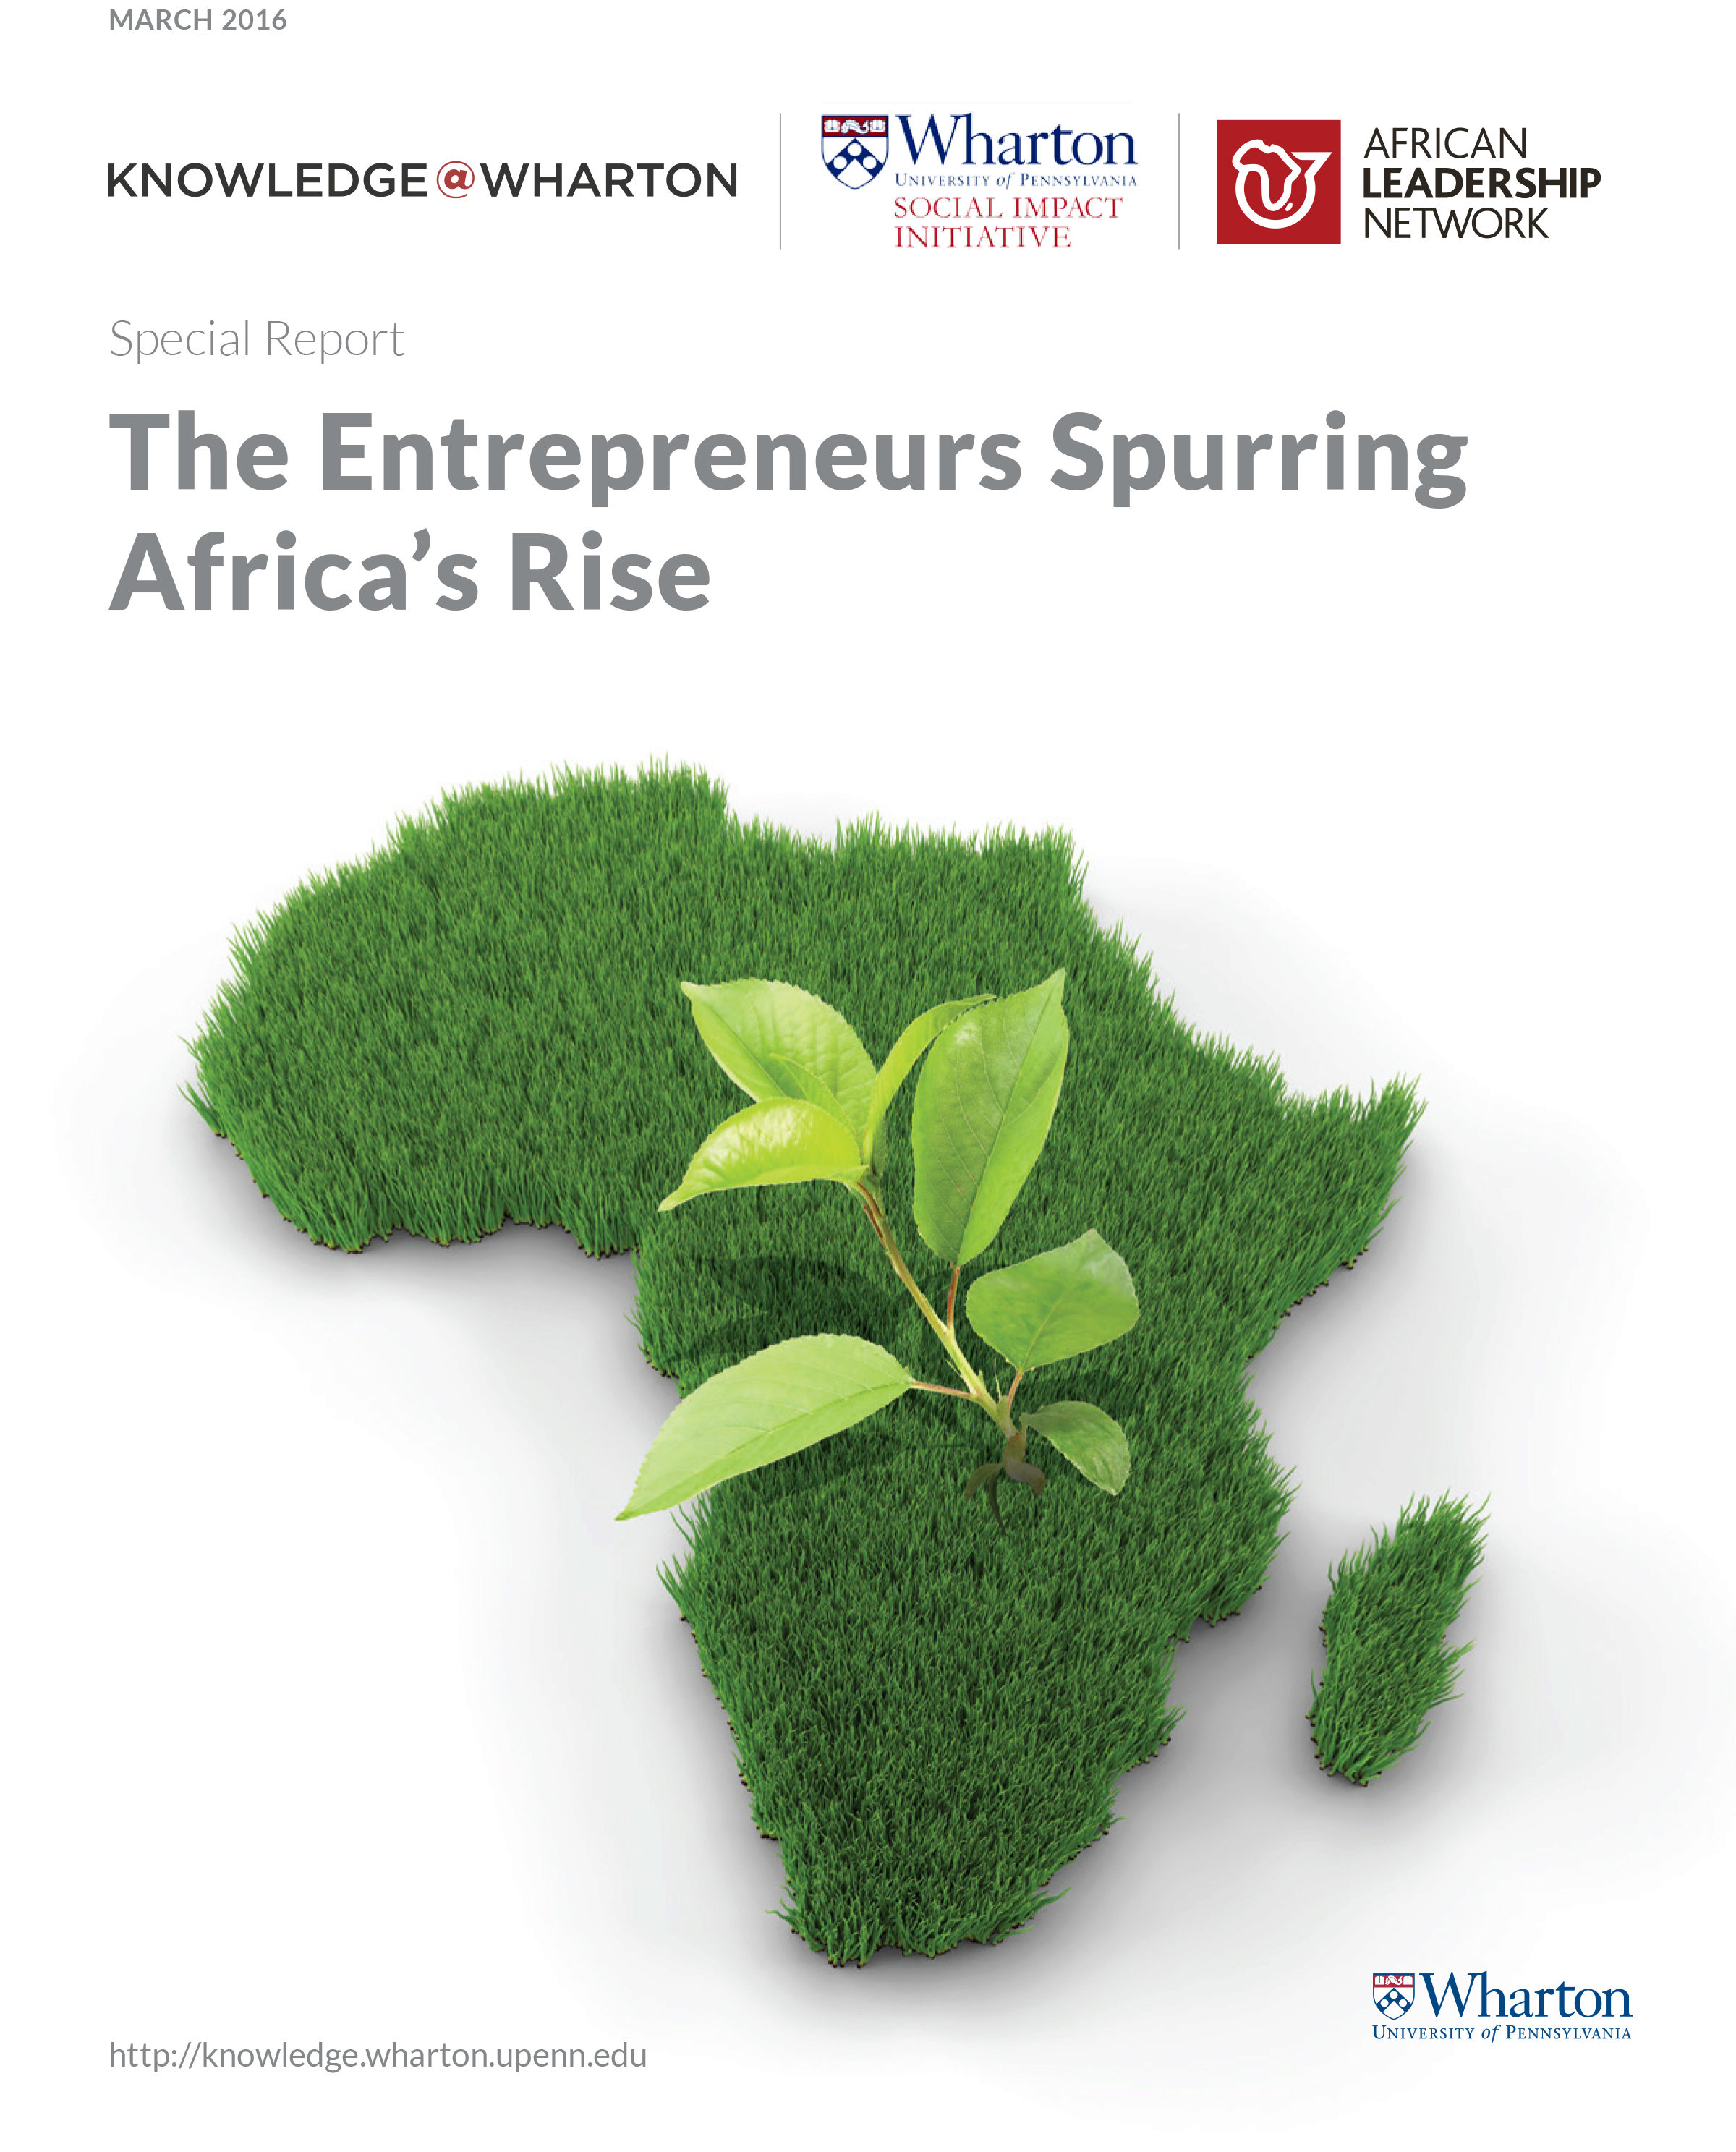 research and reports social impact the entrepreneurs spurring africa s rise